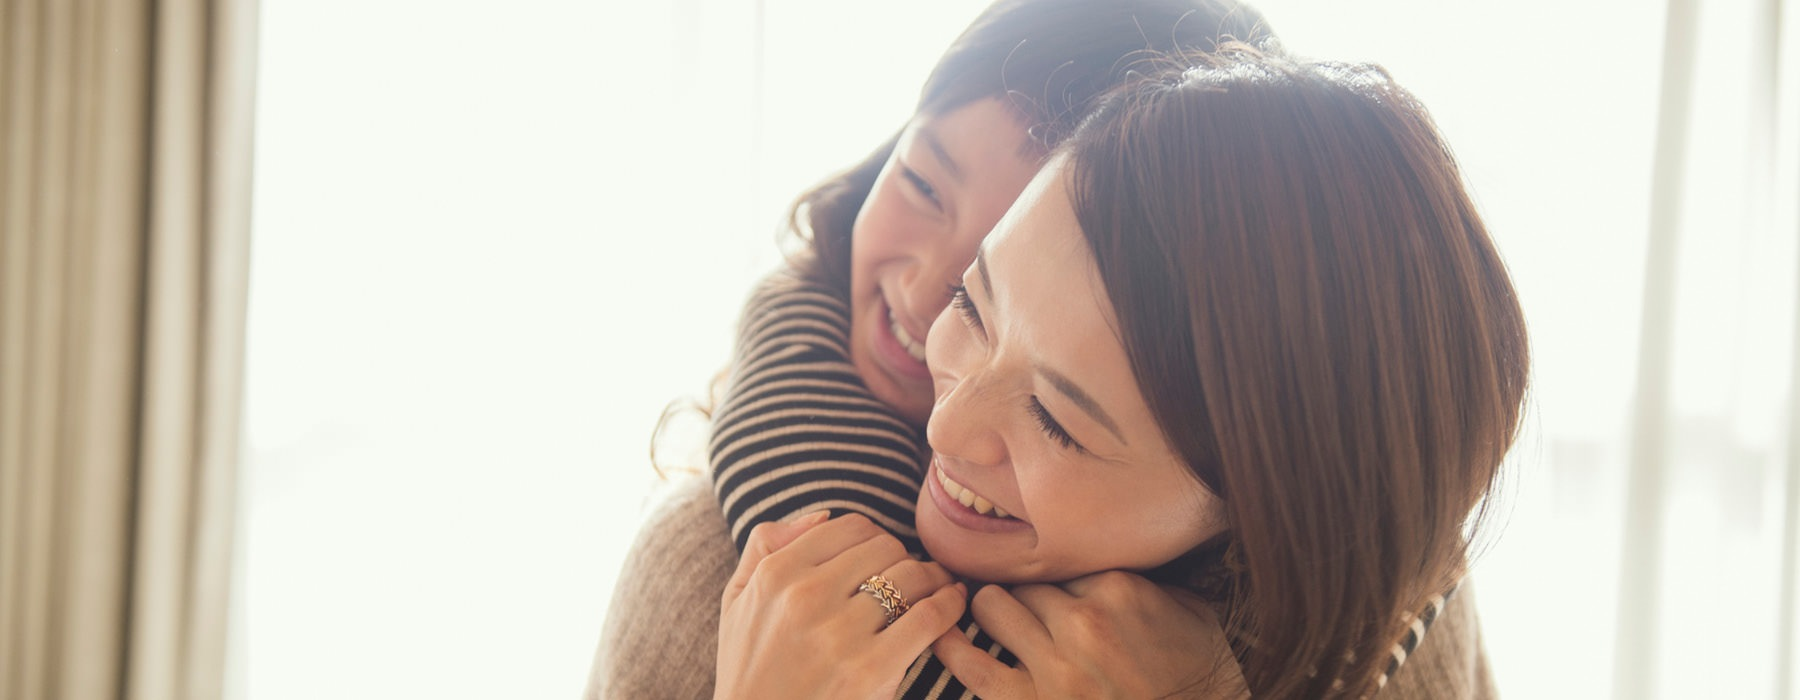 daughter's arms around her mother's neck as both smile in their bright living room